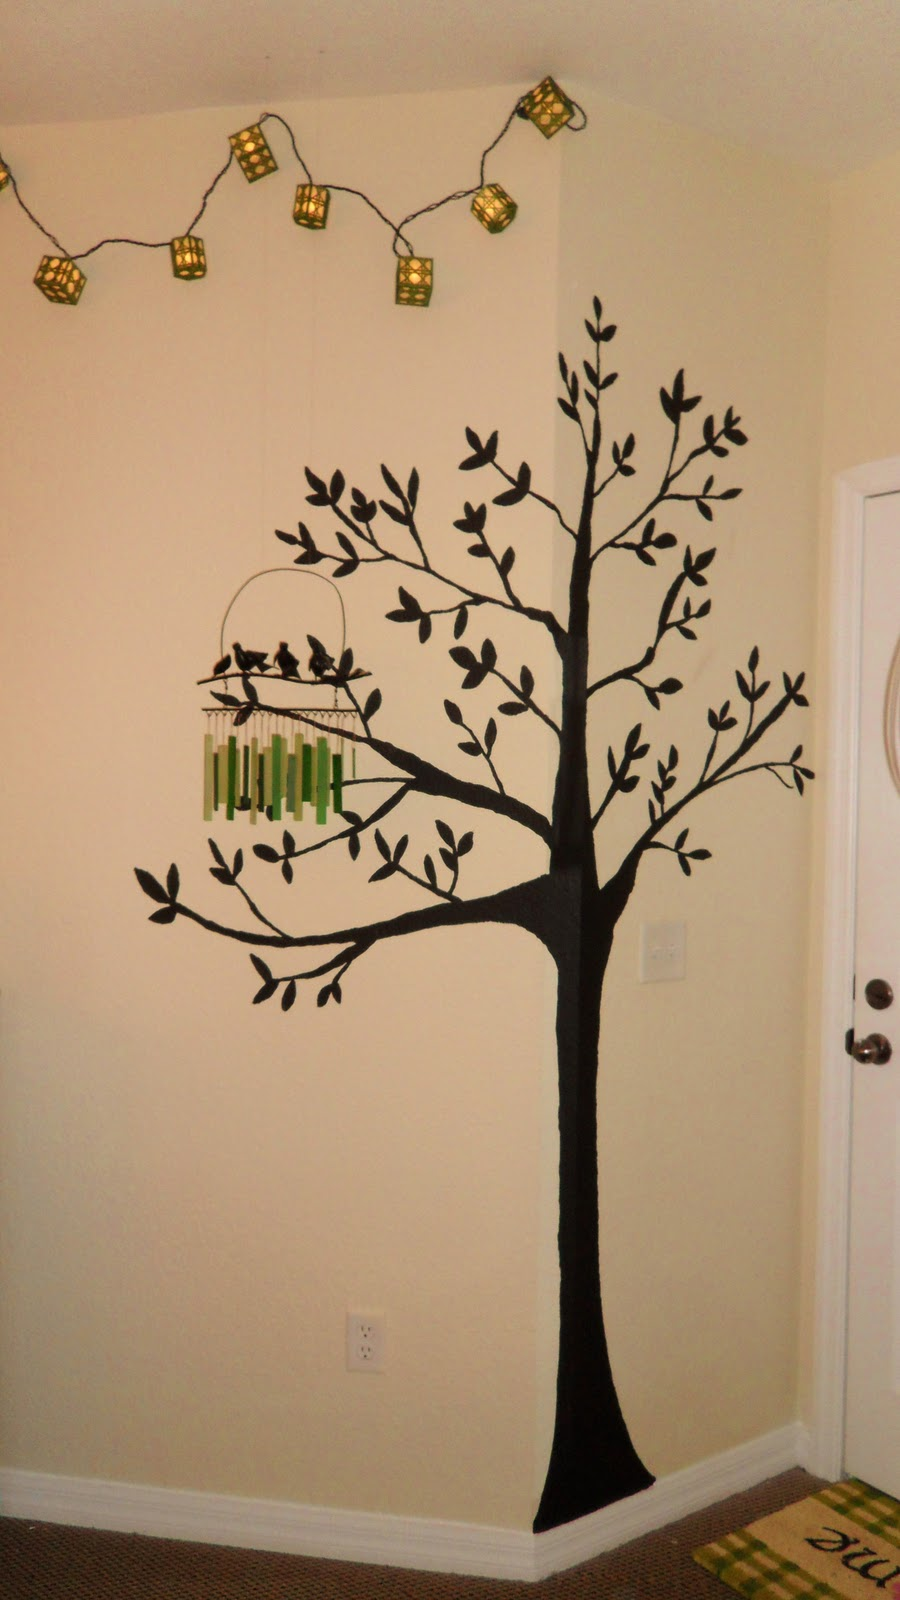 LC Design: Painted Trees for Bedroom or Living Room Walls